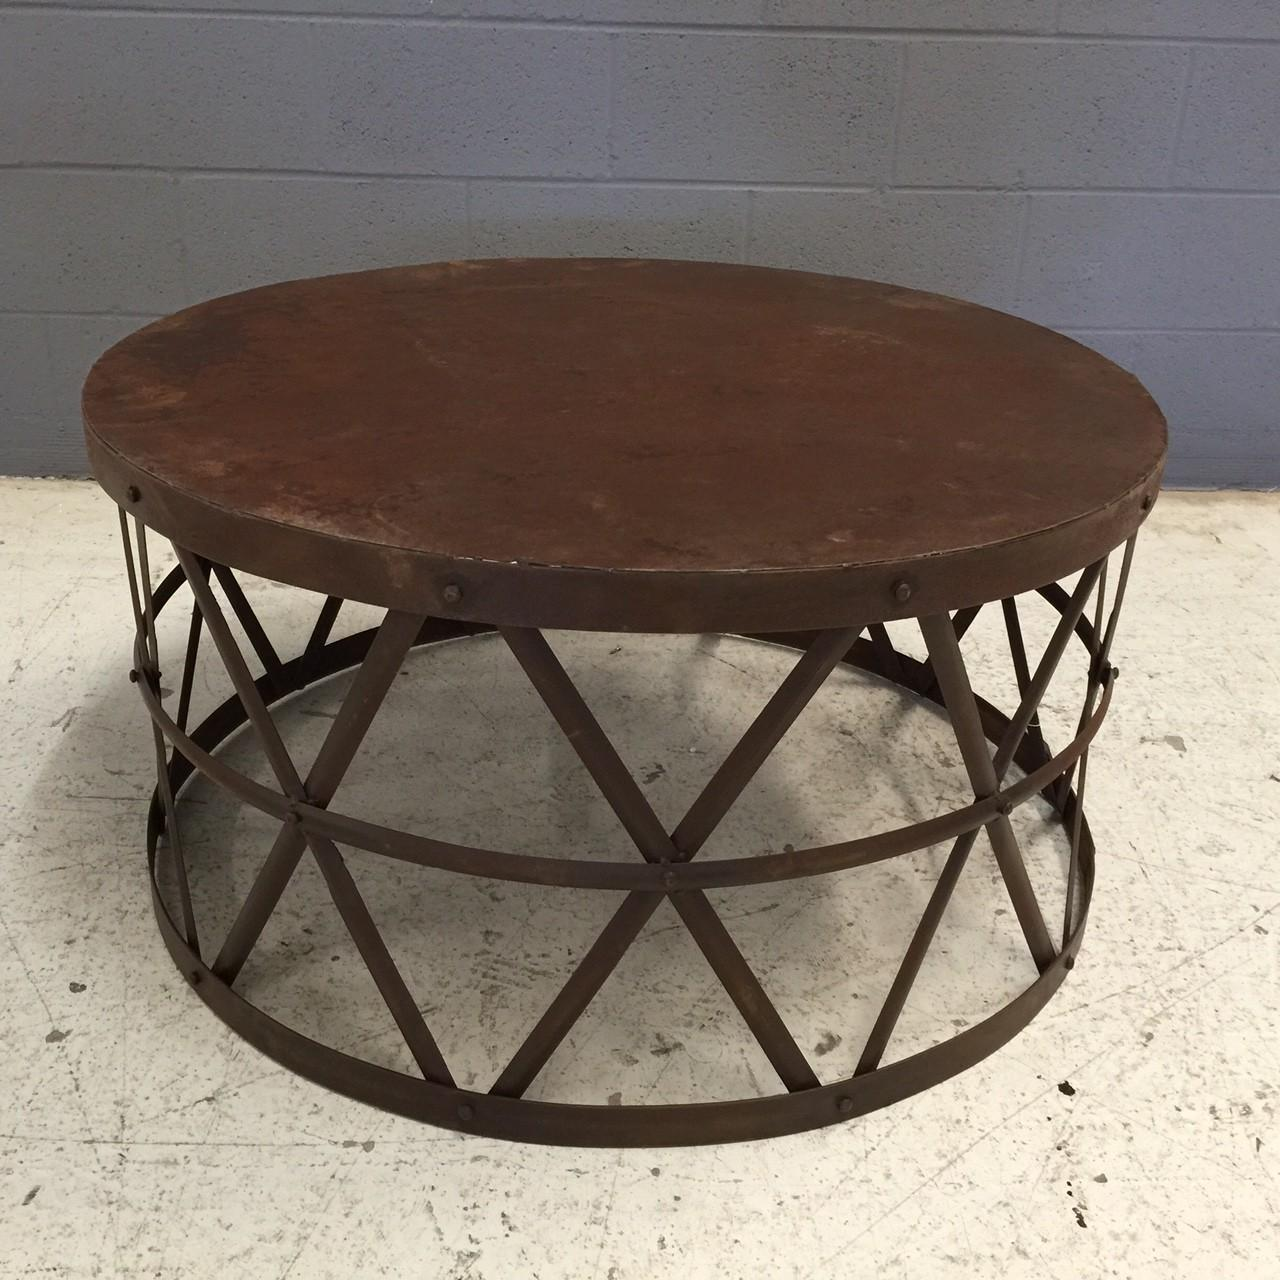 Round Metal Coffee Table Shapes Med Art Home Design Posters